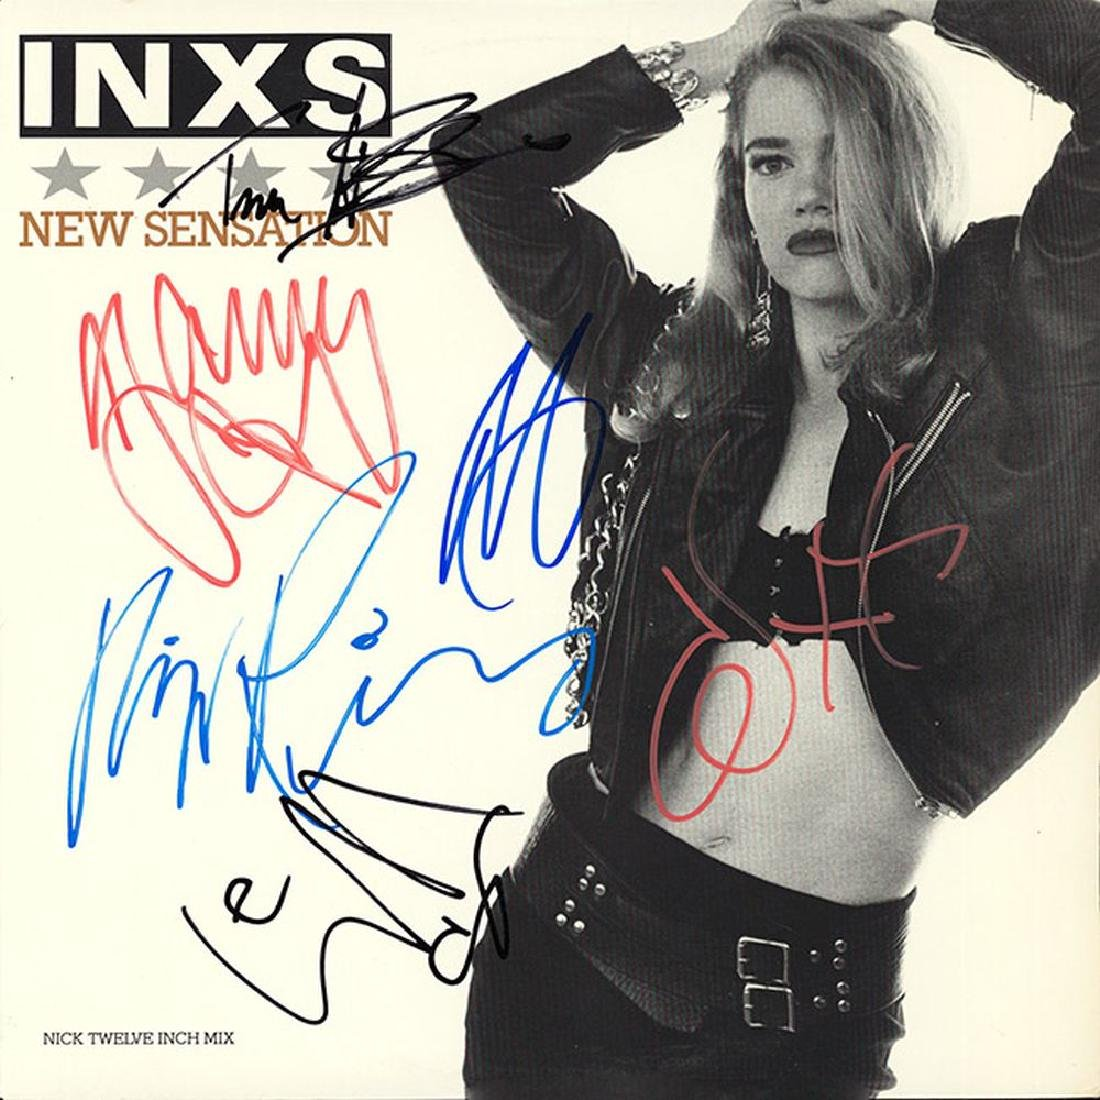 INXS Band Signed New Sensation Album